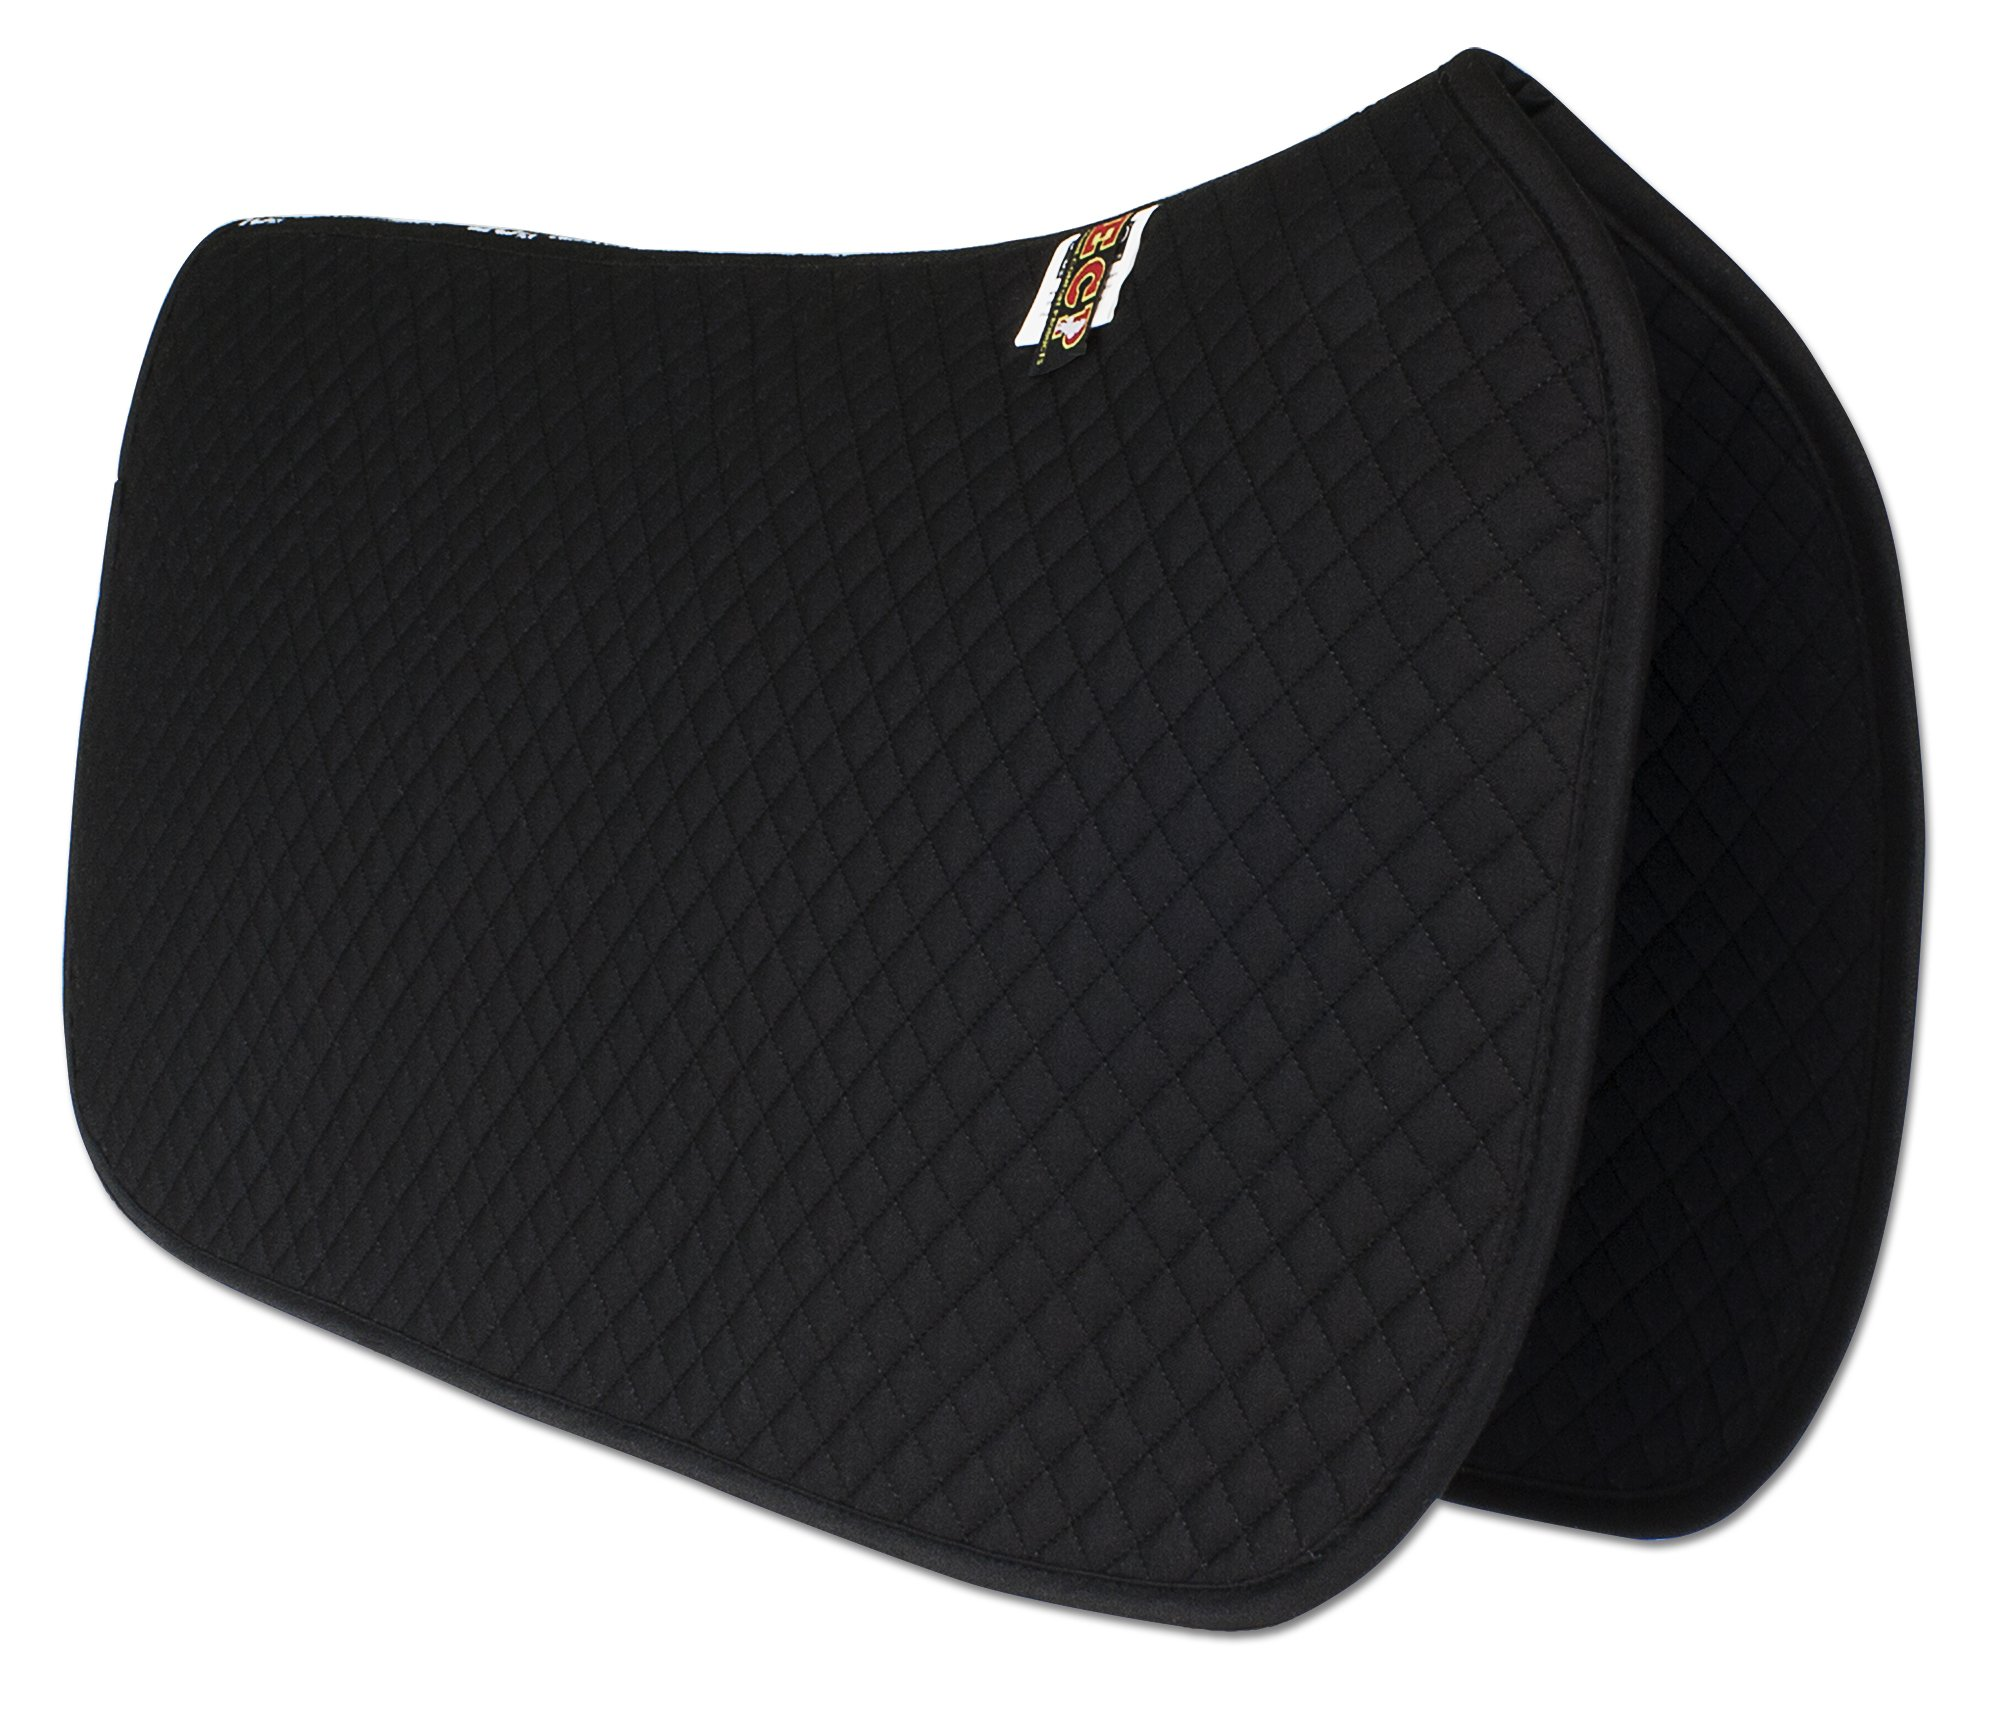 ECP Western All Purpose Diamond Quilted Cotton Saddle Pad Color Black